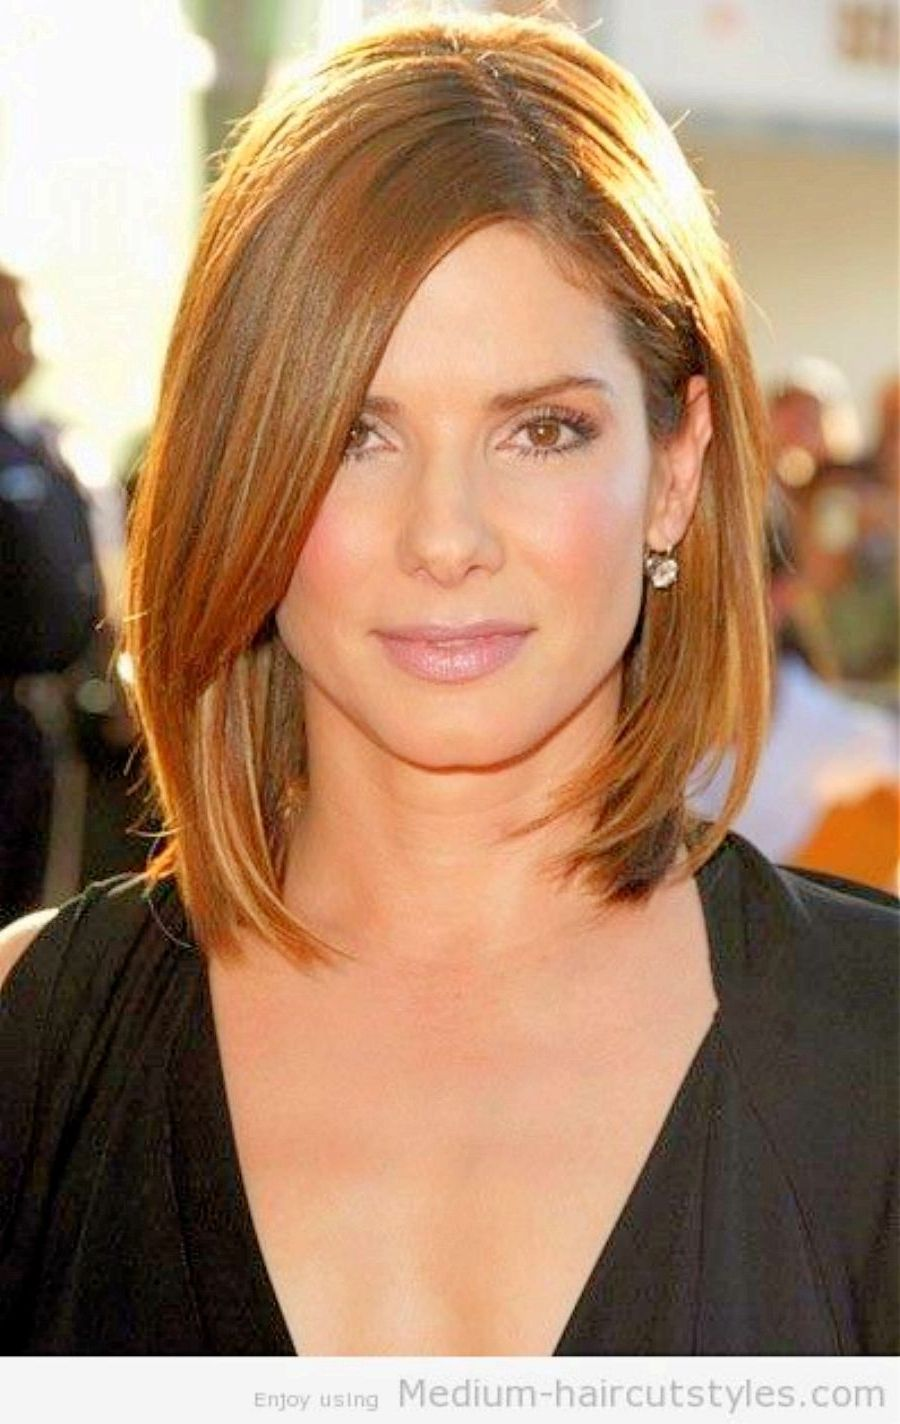 Hairstyles for women over with round face best hairstyles for